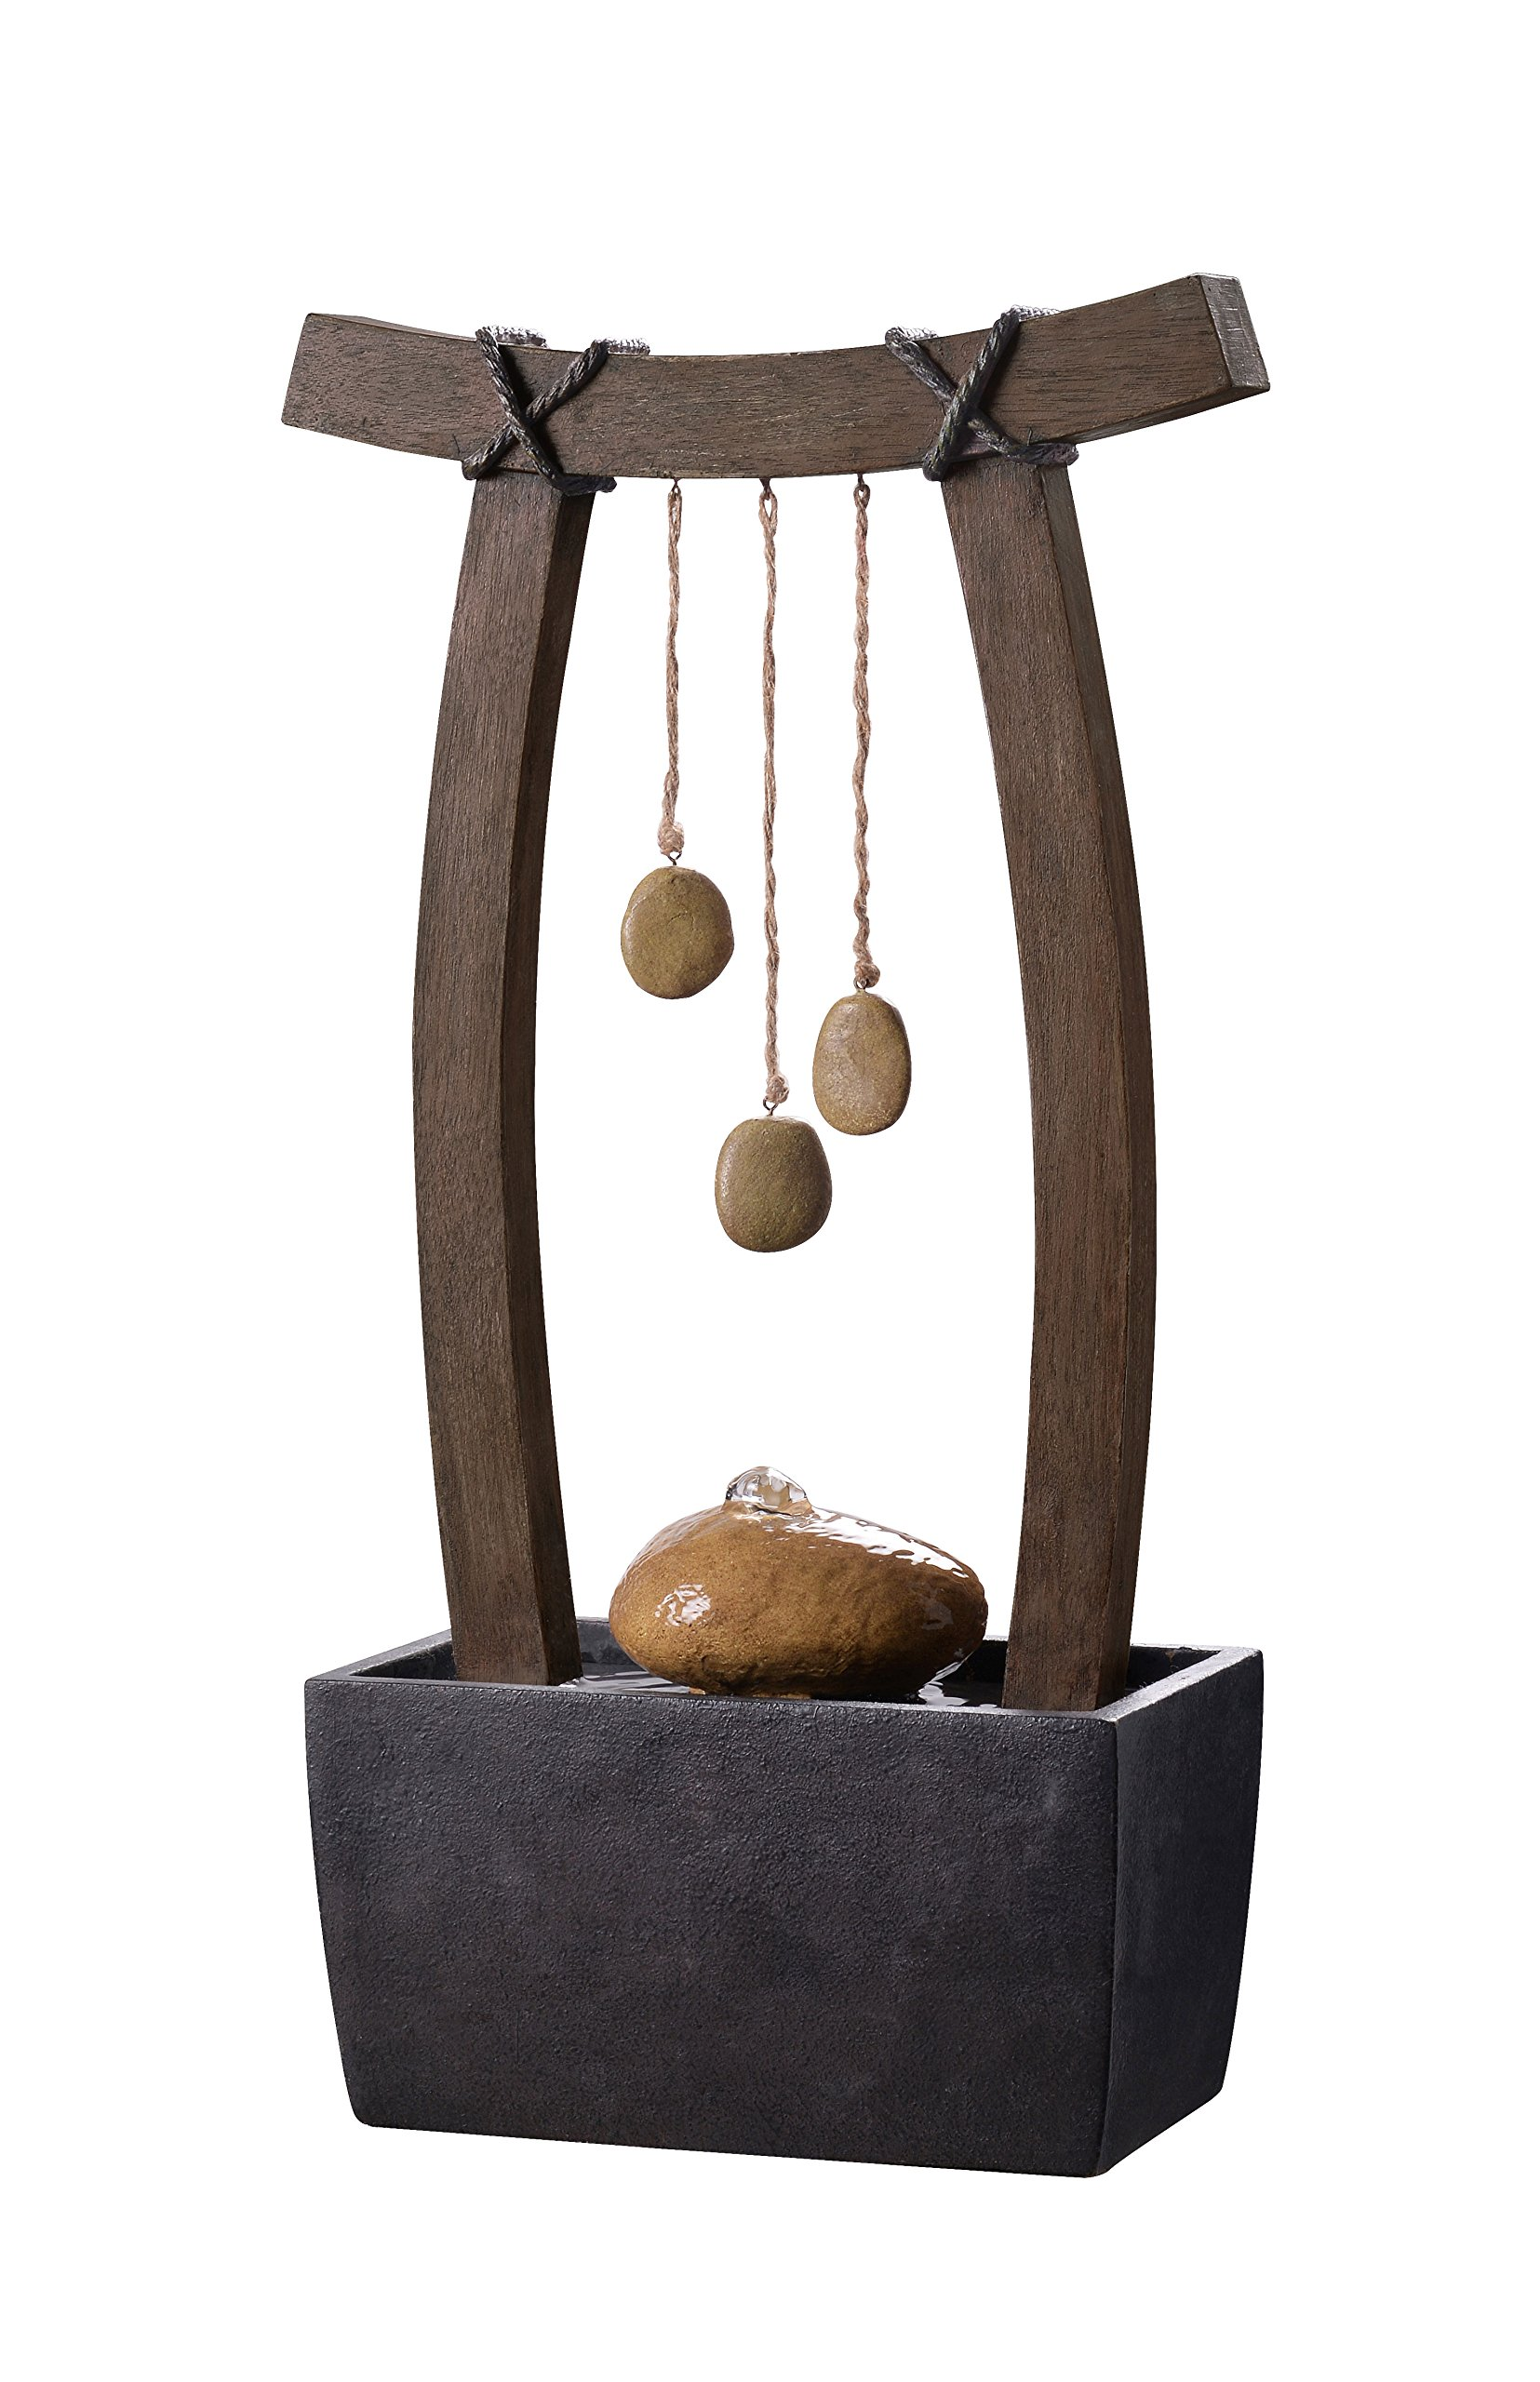 Kenroy Home 51047WDG Reflection Indoor Table Fountain, 21.5 Inch Height, Woodgrain, Rope and Stone - PAINT DURABILITY: This fountain features an expertly applied finish that stays vibrant DIMENSIONS: 21.5 inch Height, 12 inch width, 6 inch Extension PUMP PERFORMANCE: Our pumps feature industry-leading motors and components, tuned for optimal performance - patio, fountains, outdoor-decor - 81B2l8K1r L -